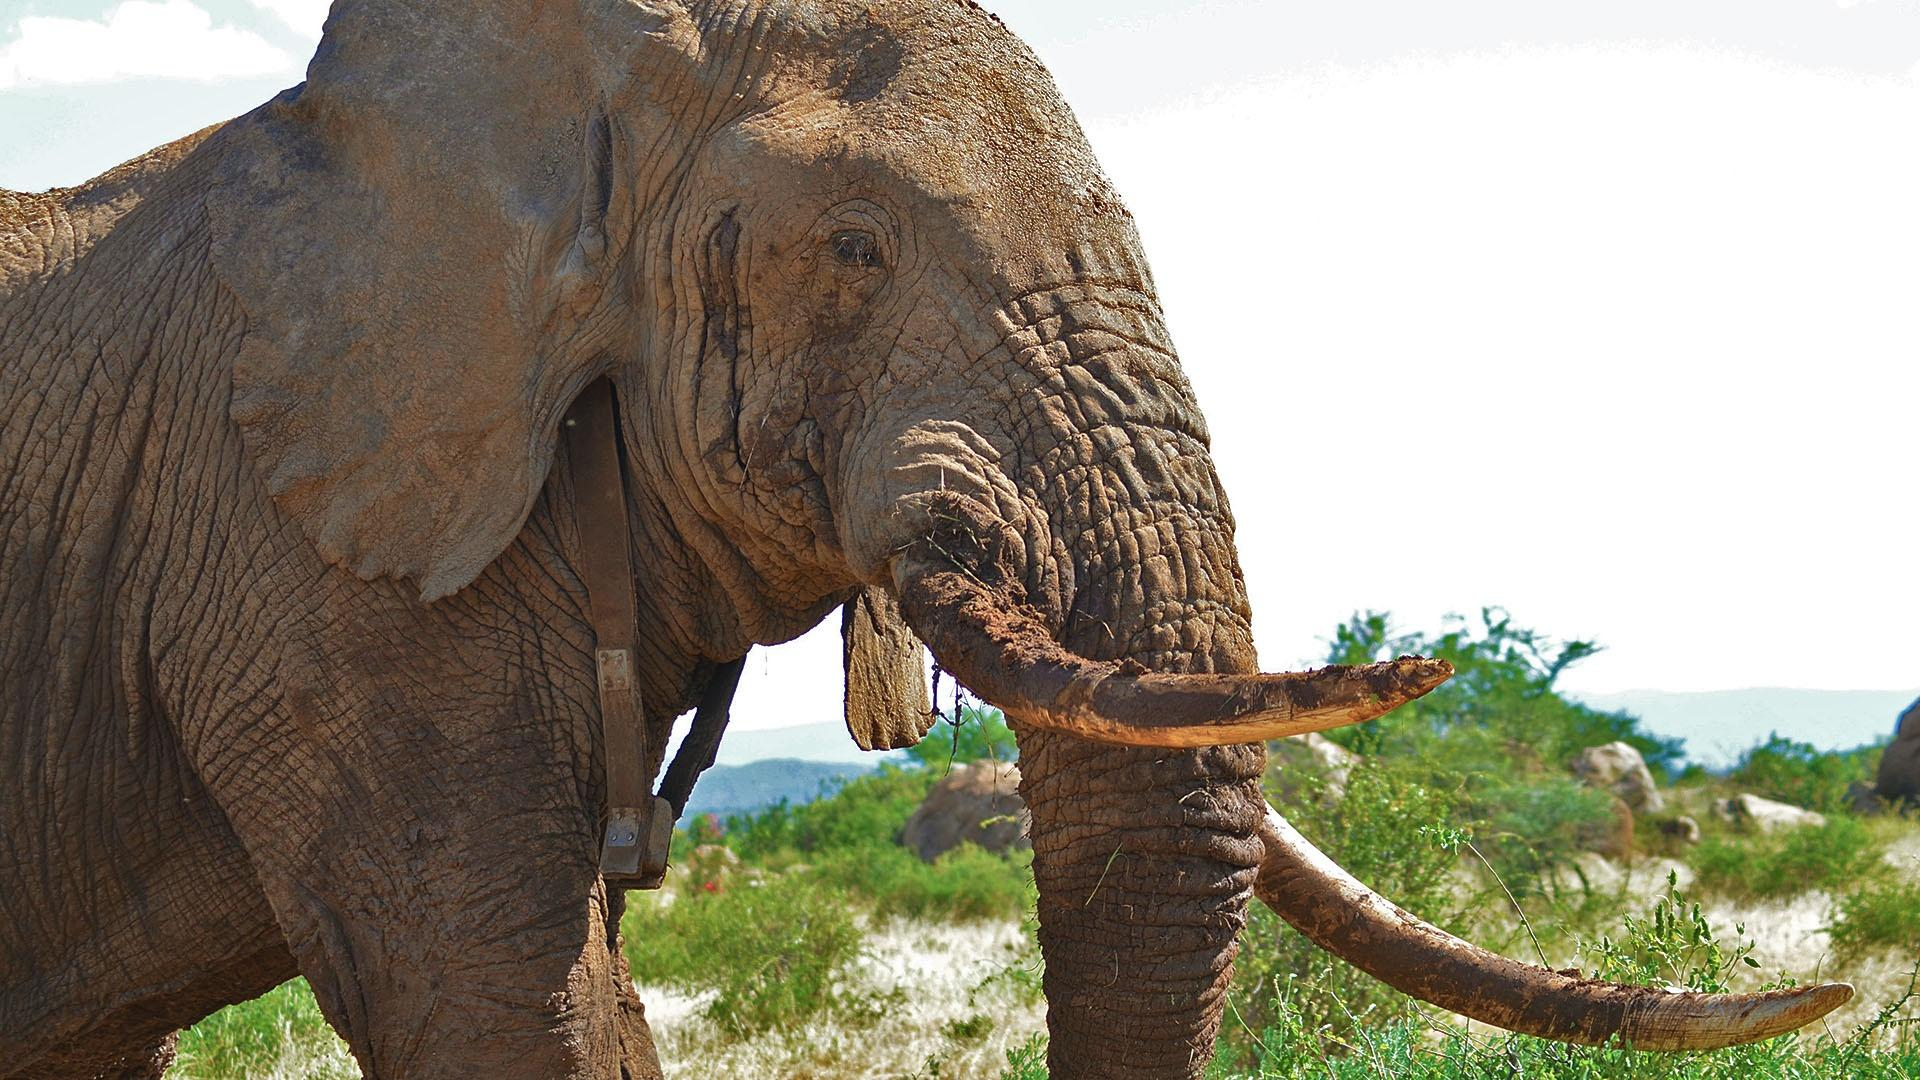 Encounter with a Musth Bull Elephant